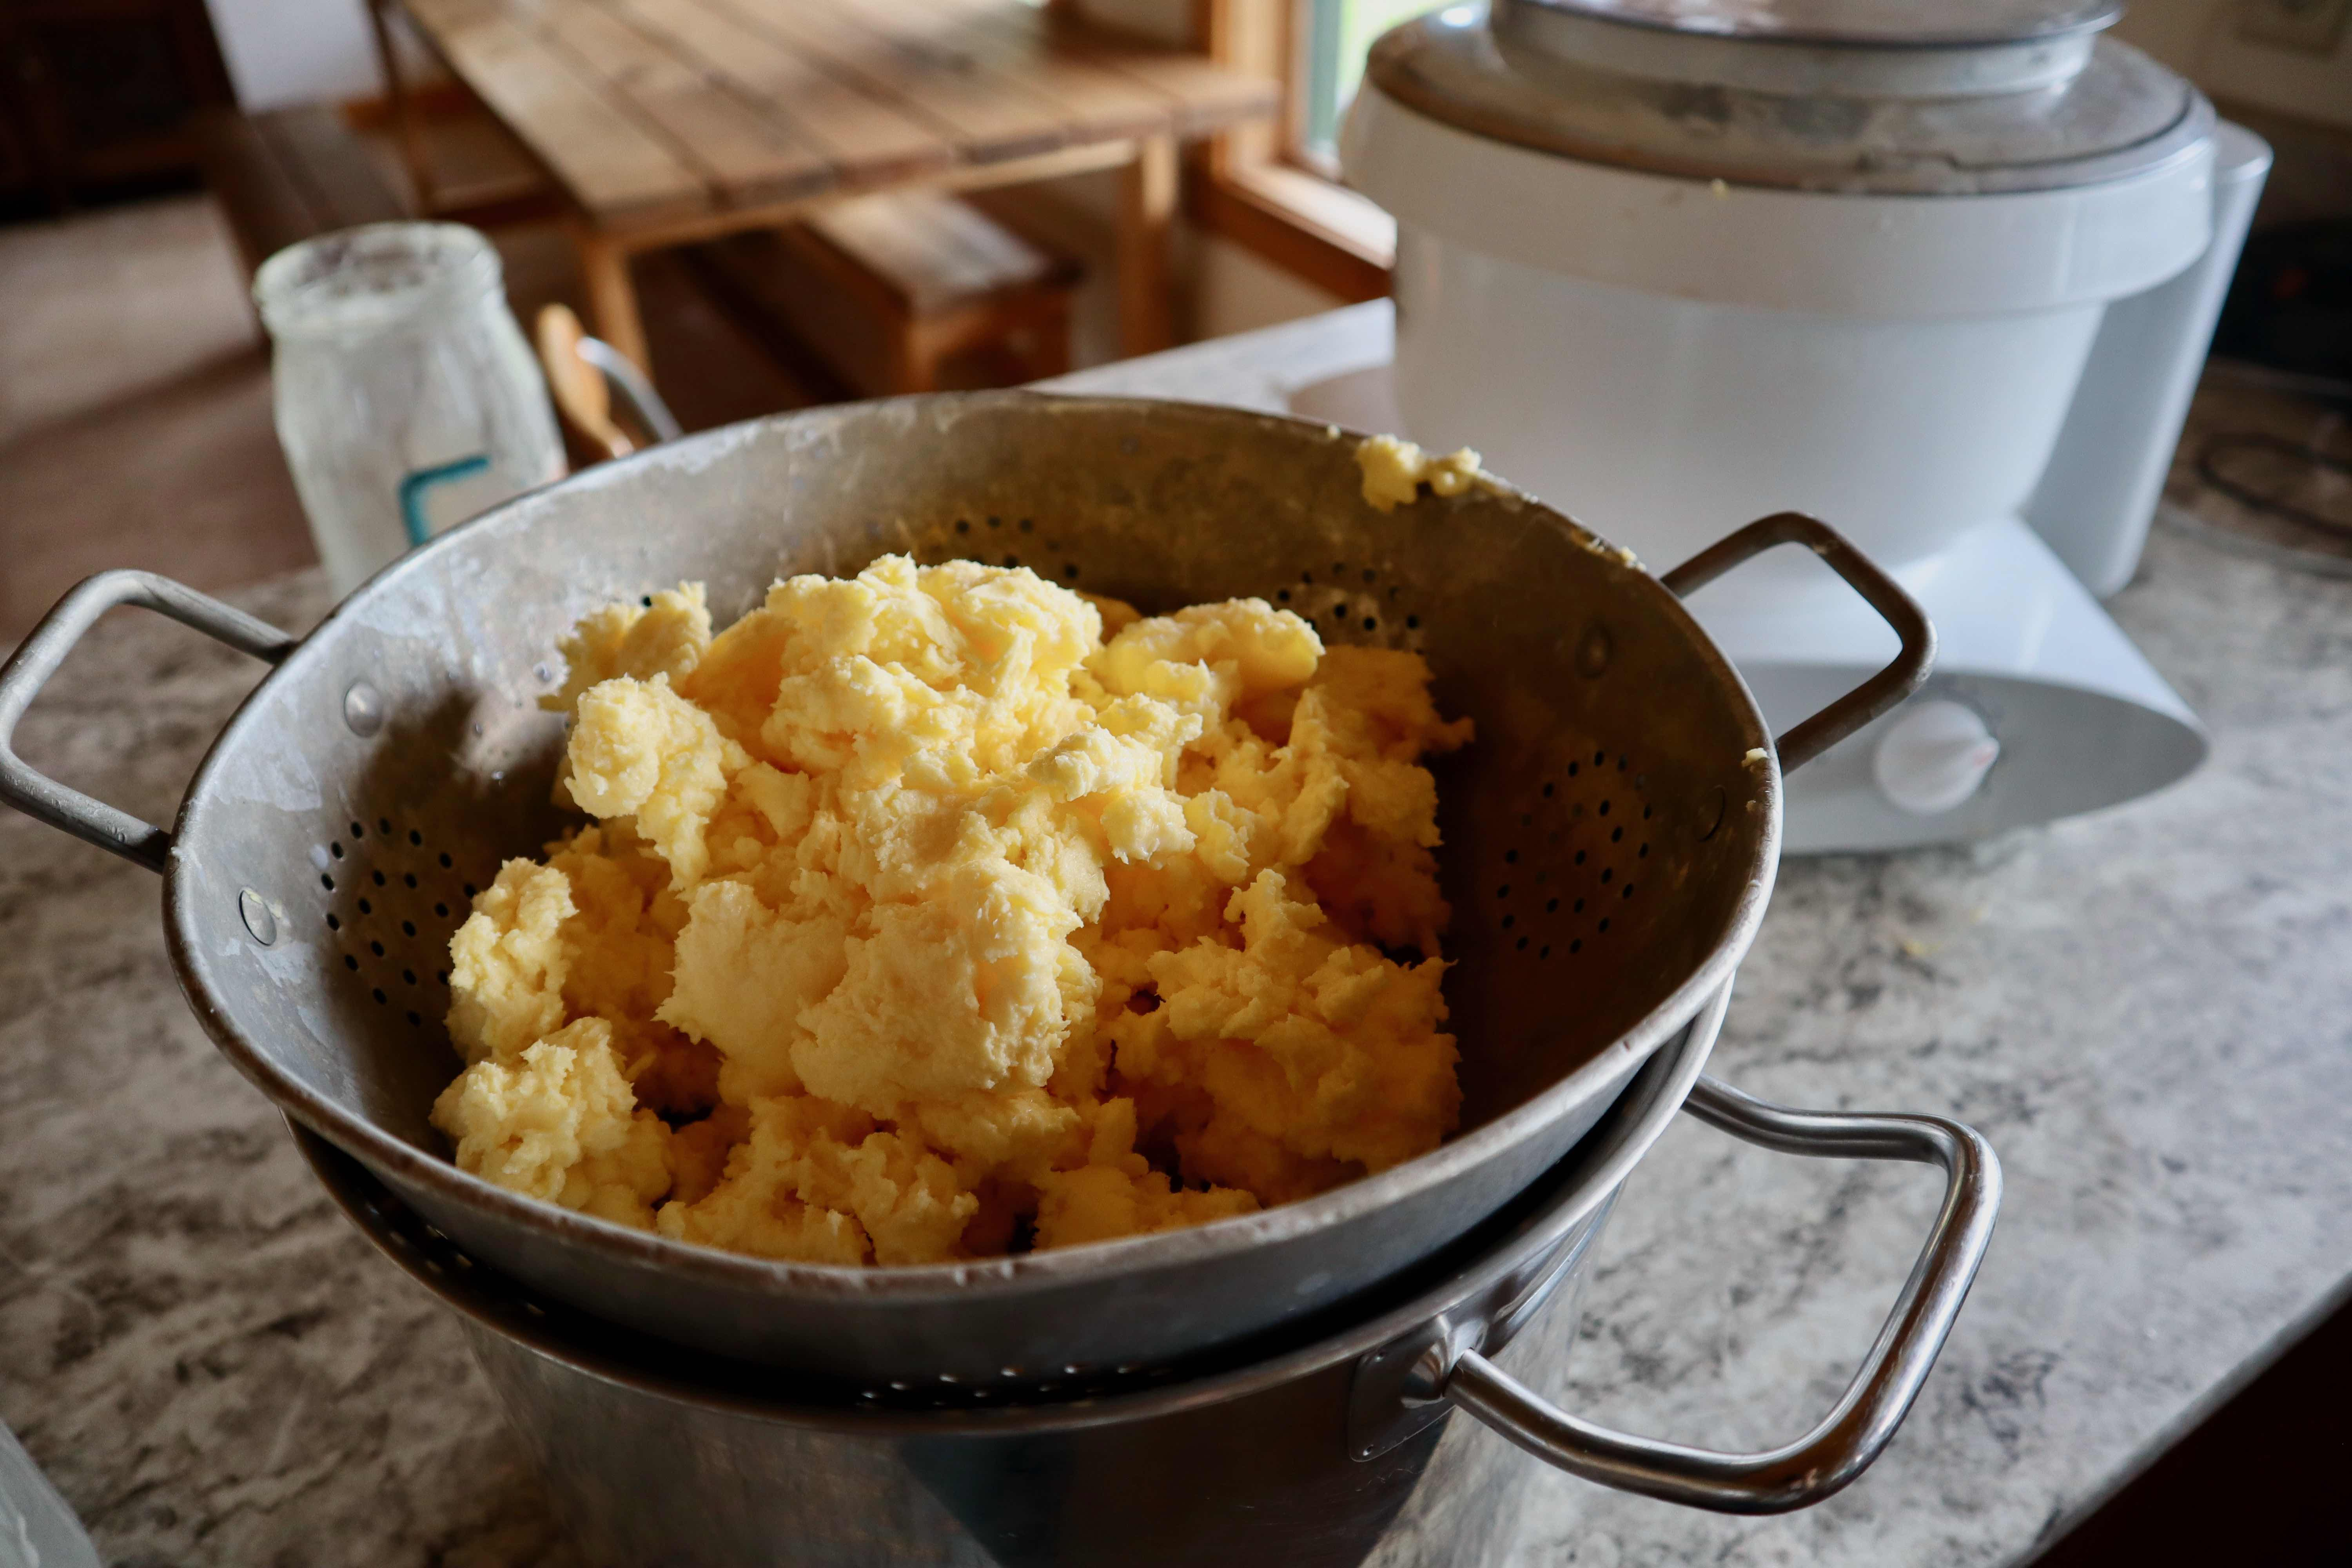 Butter in a colander after straining out the buttermilk.